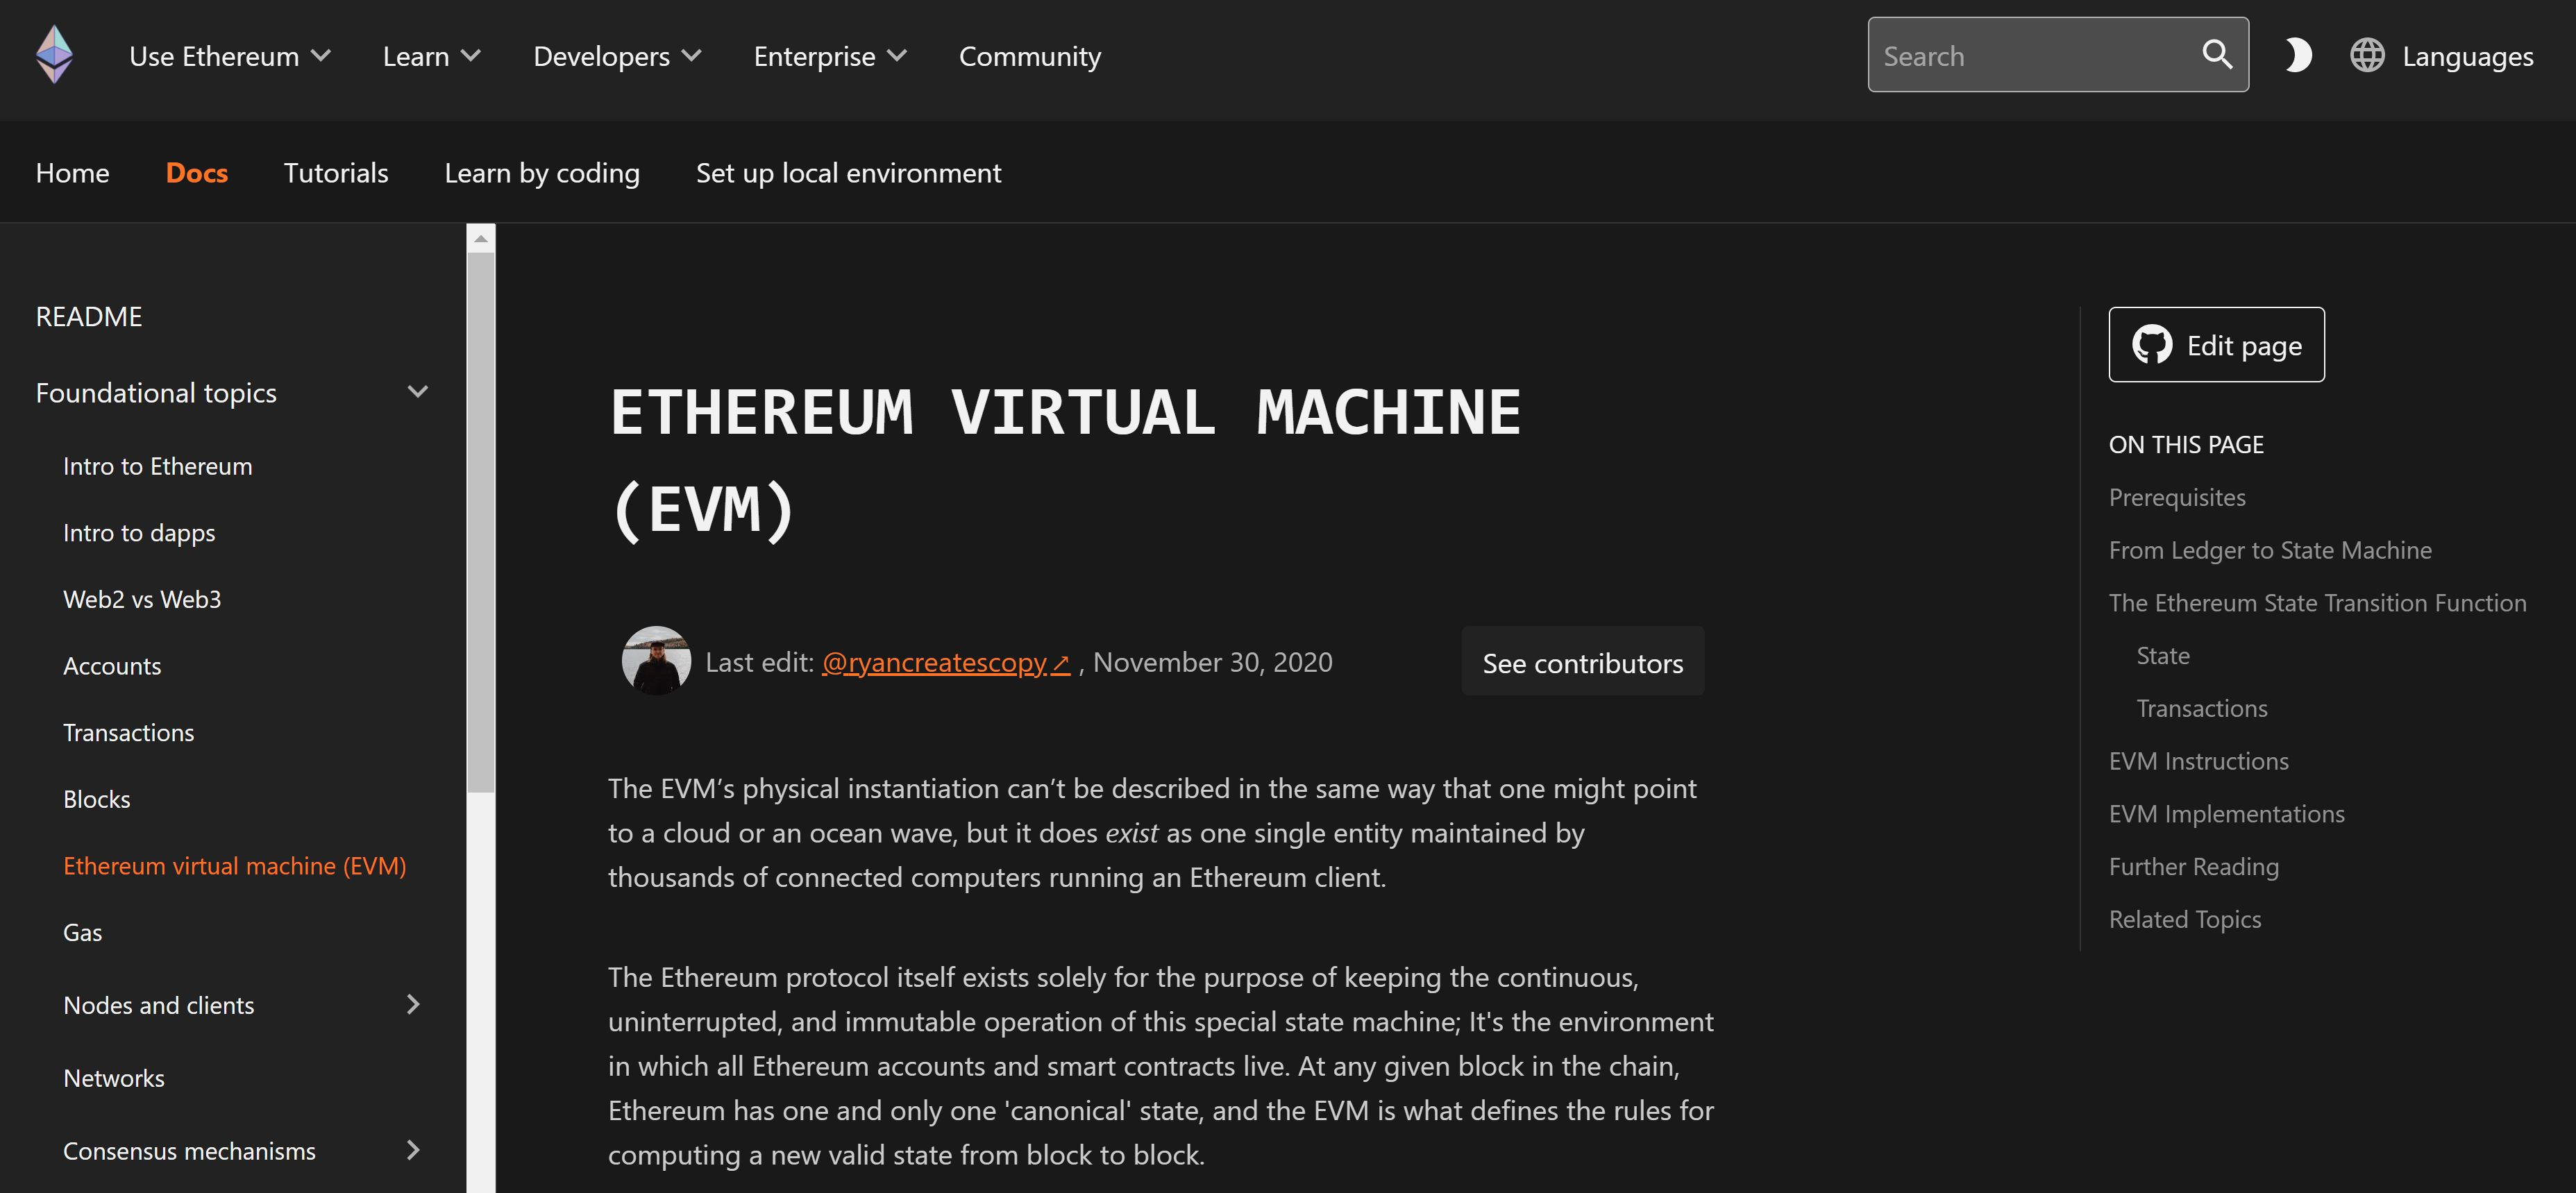 Déclaration du site Web de la machine virtuelle Ethereum